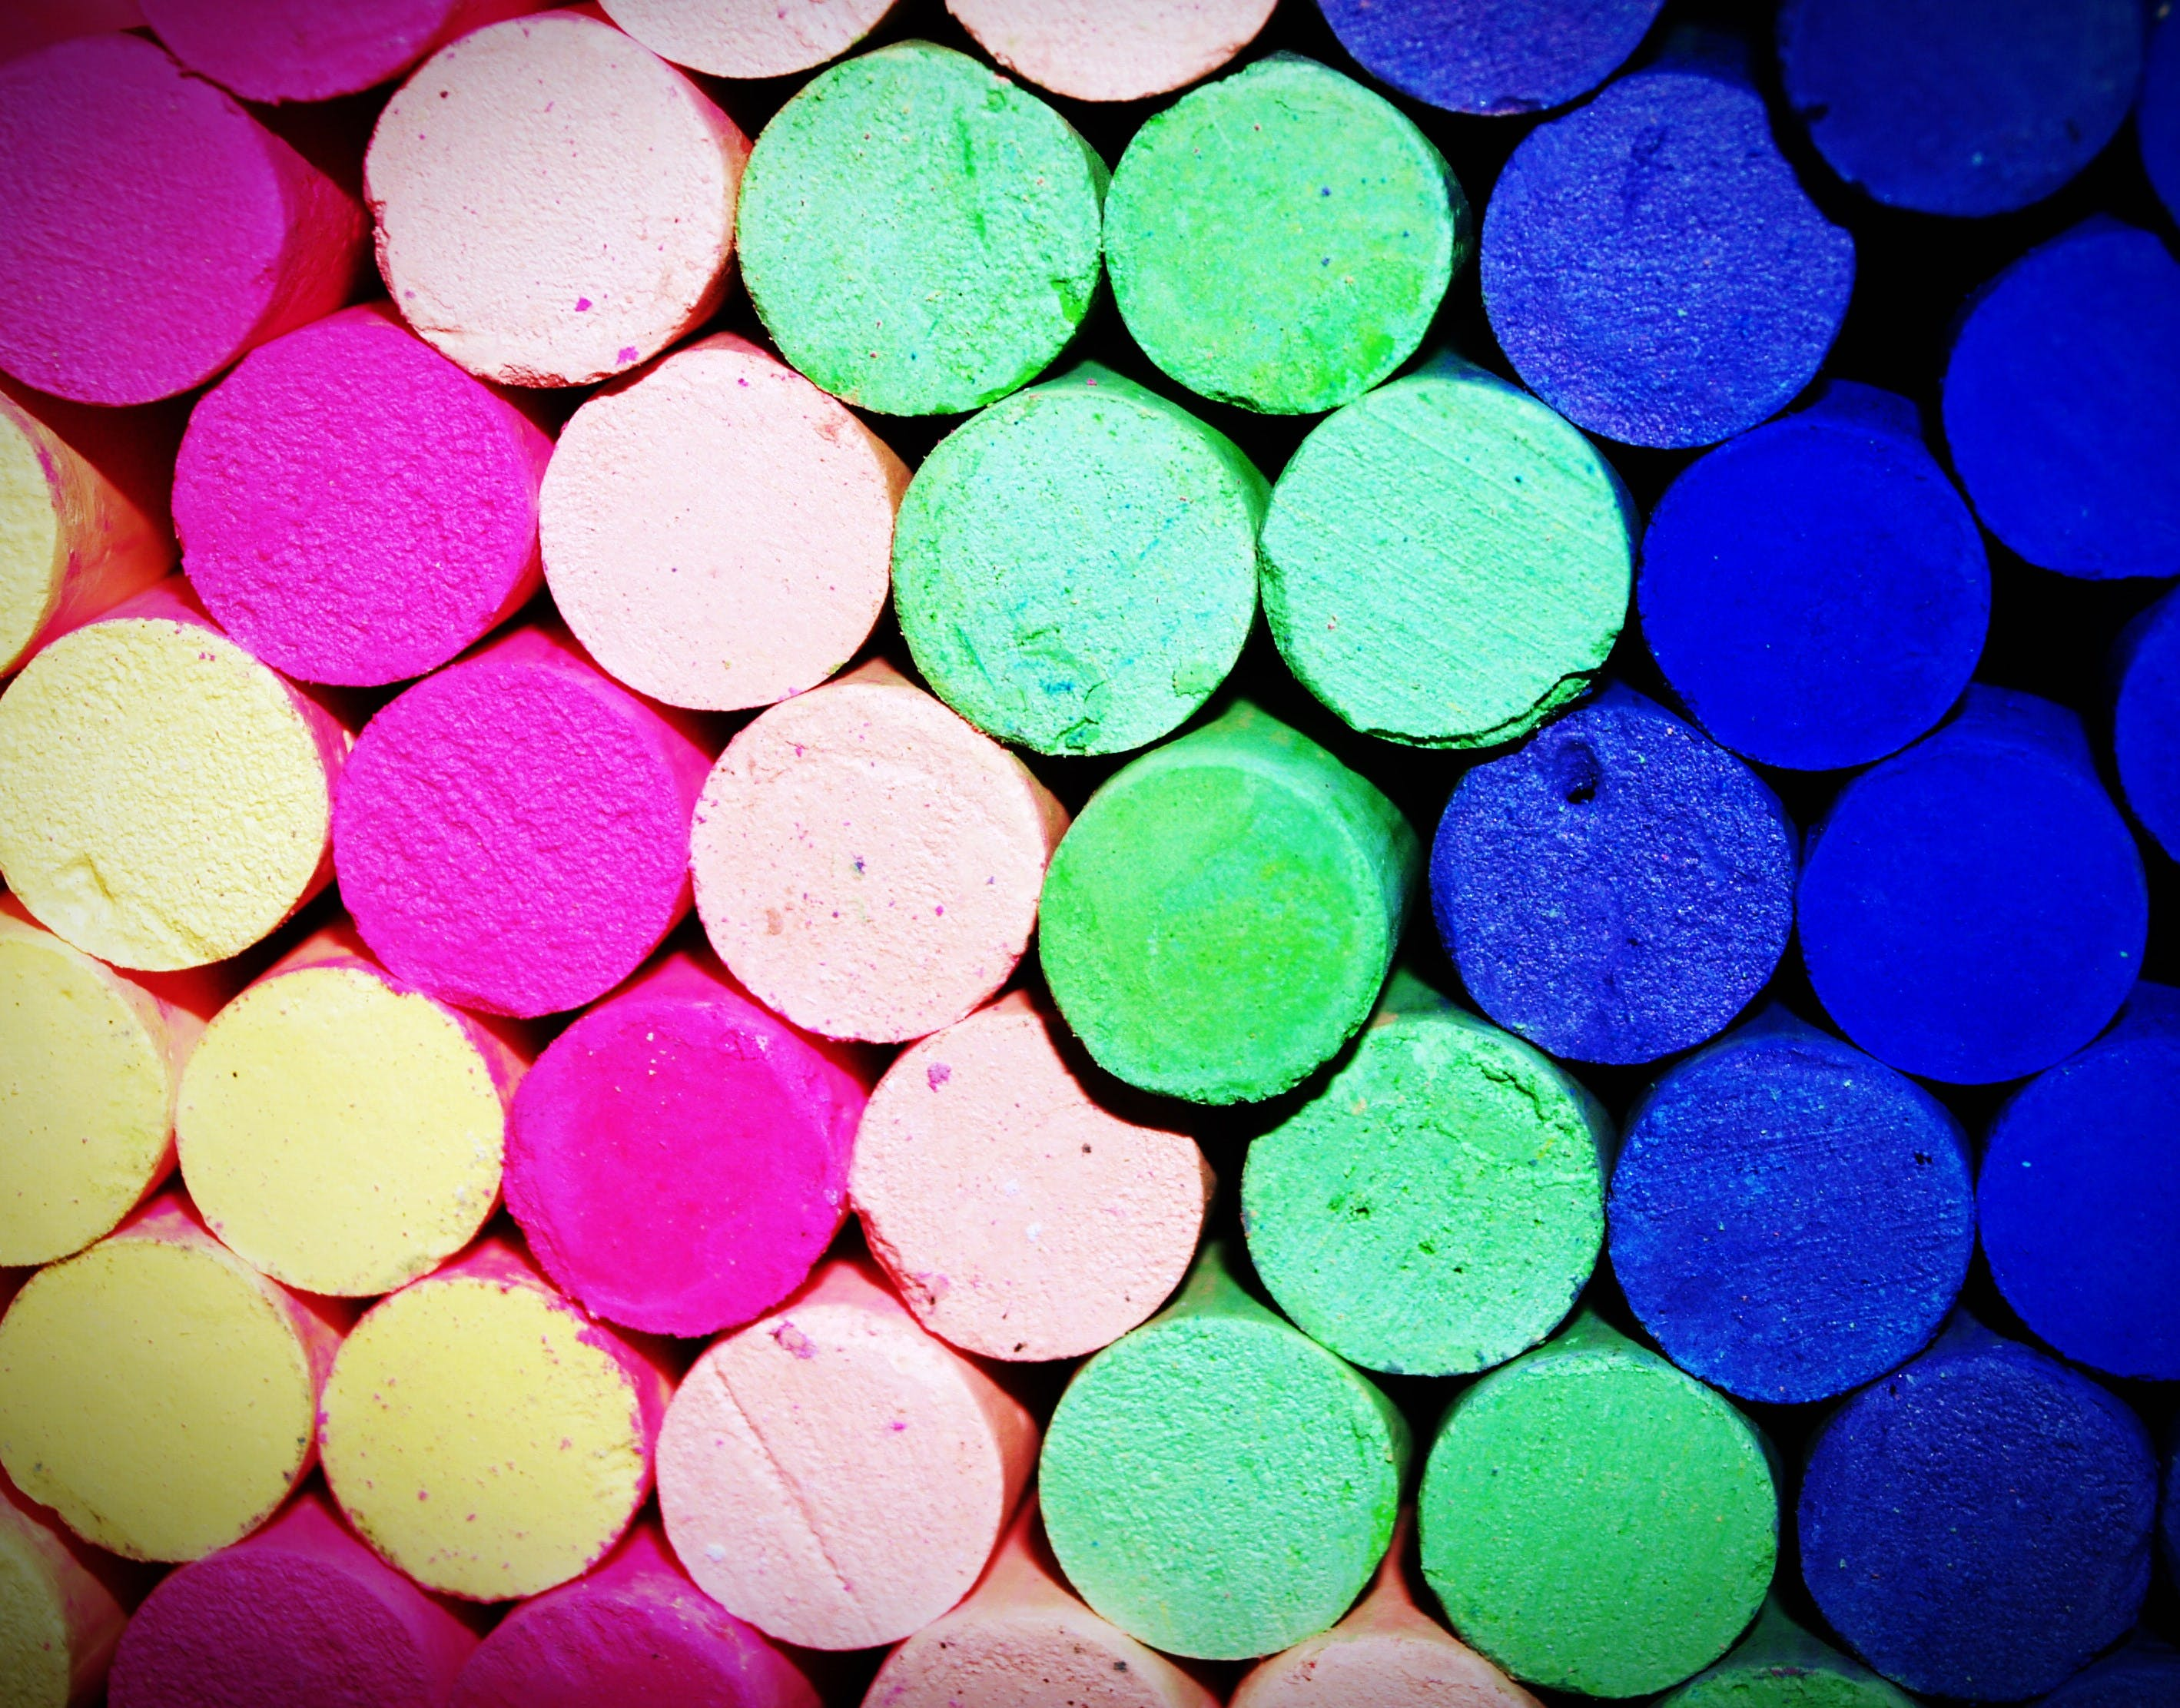 Assorted-color Pile of Chalk in Close-up Photo